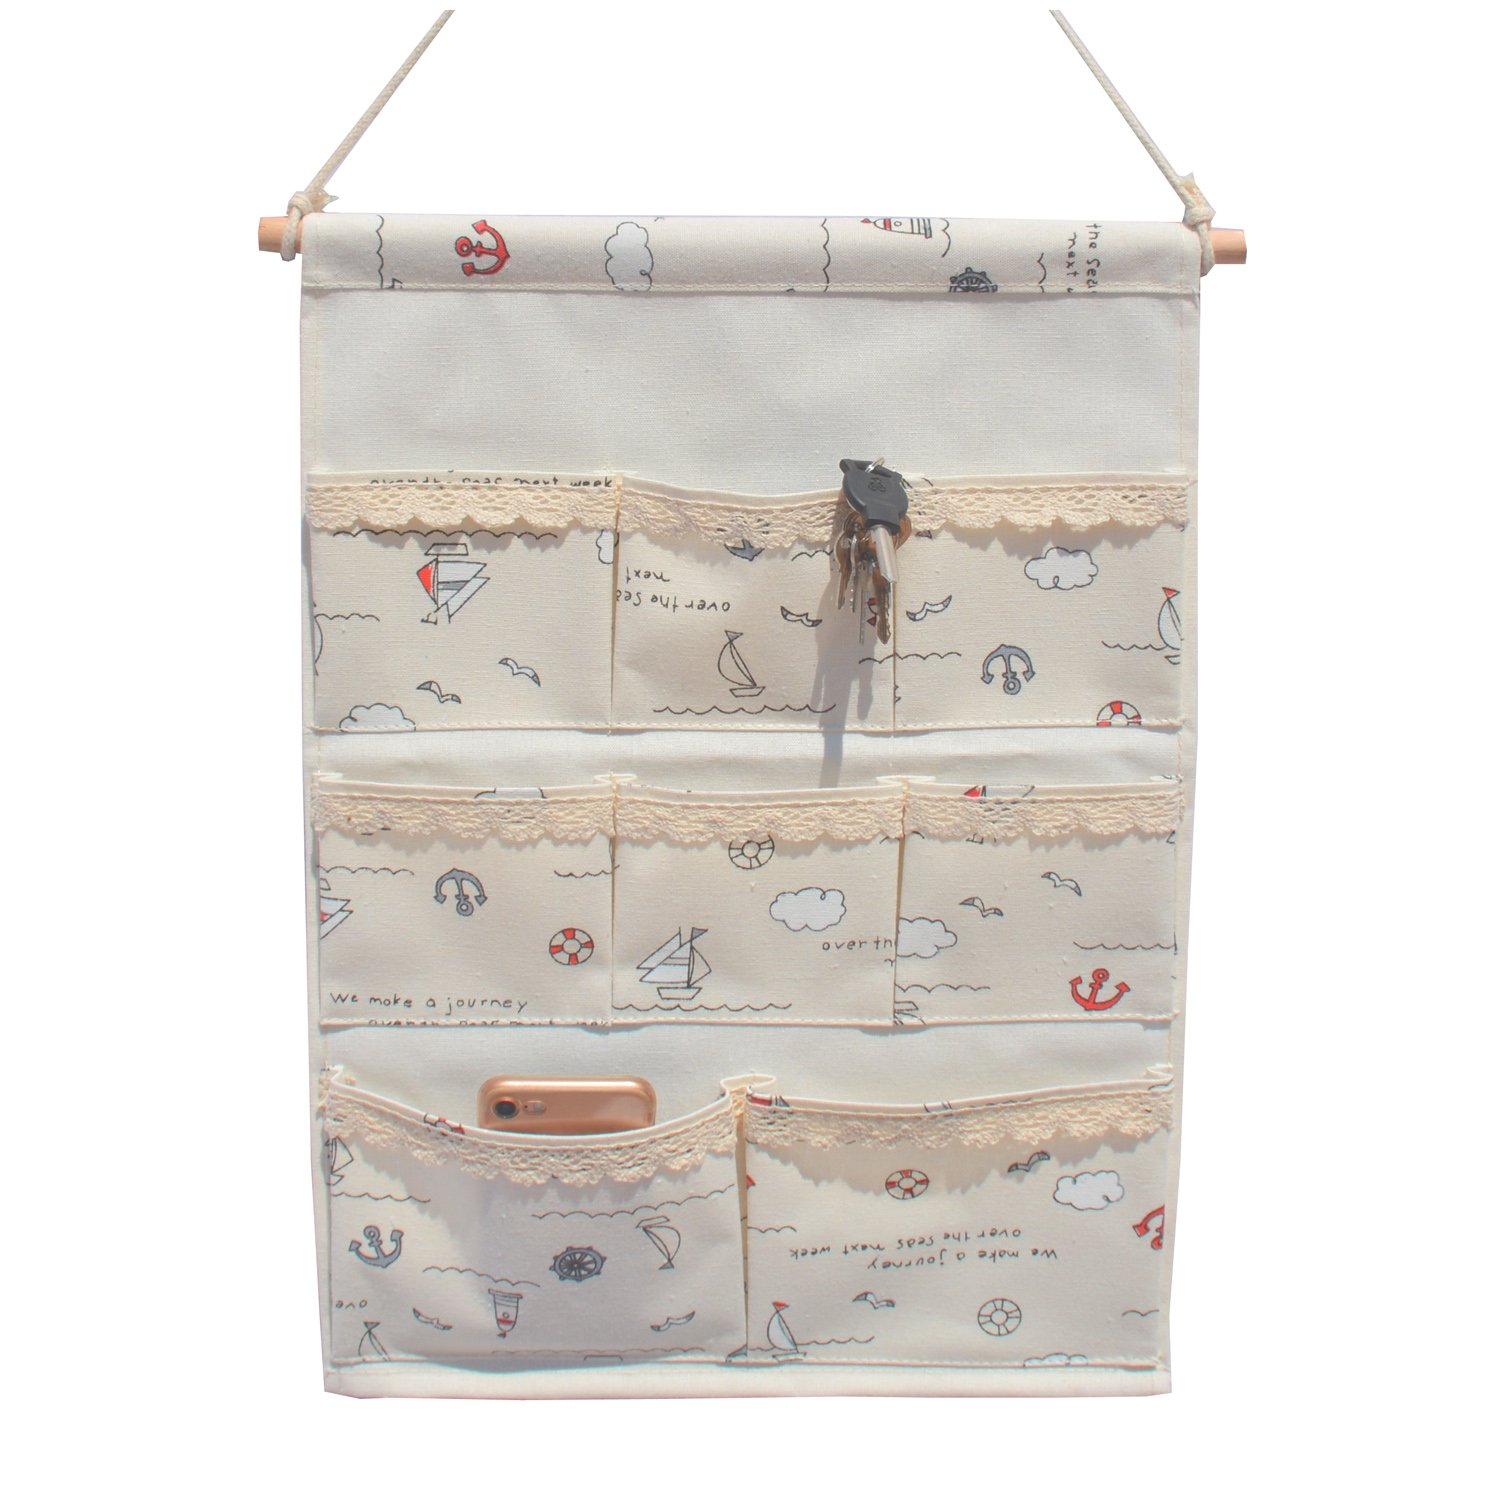 Cotton Fabric Rectangle Wall Door Closet Hanging Storage Bag Case 8 Small Pockets, Home Organizer to School Office Bedroom Kitchen for Clutch Purses, Handbags, (White-Sailboat 8 Pockets)